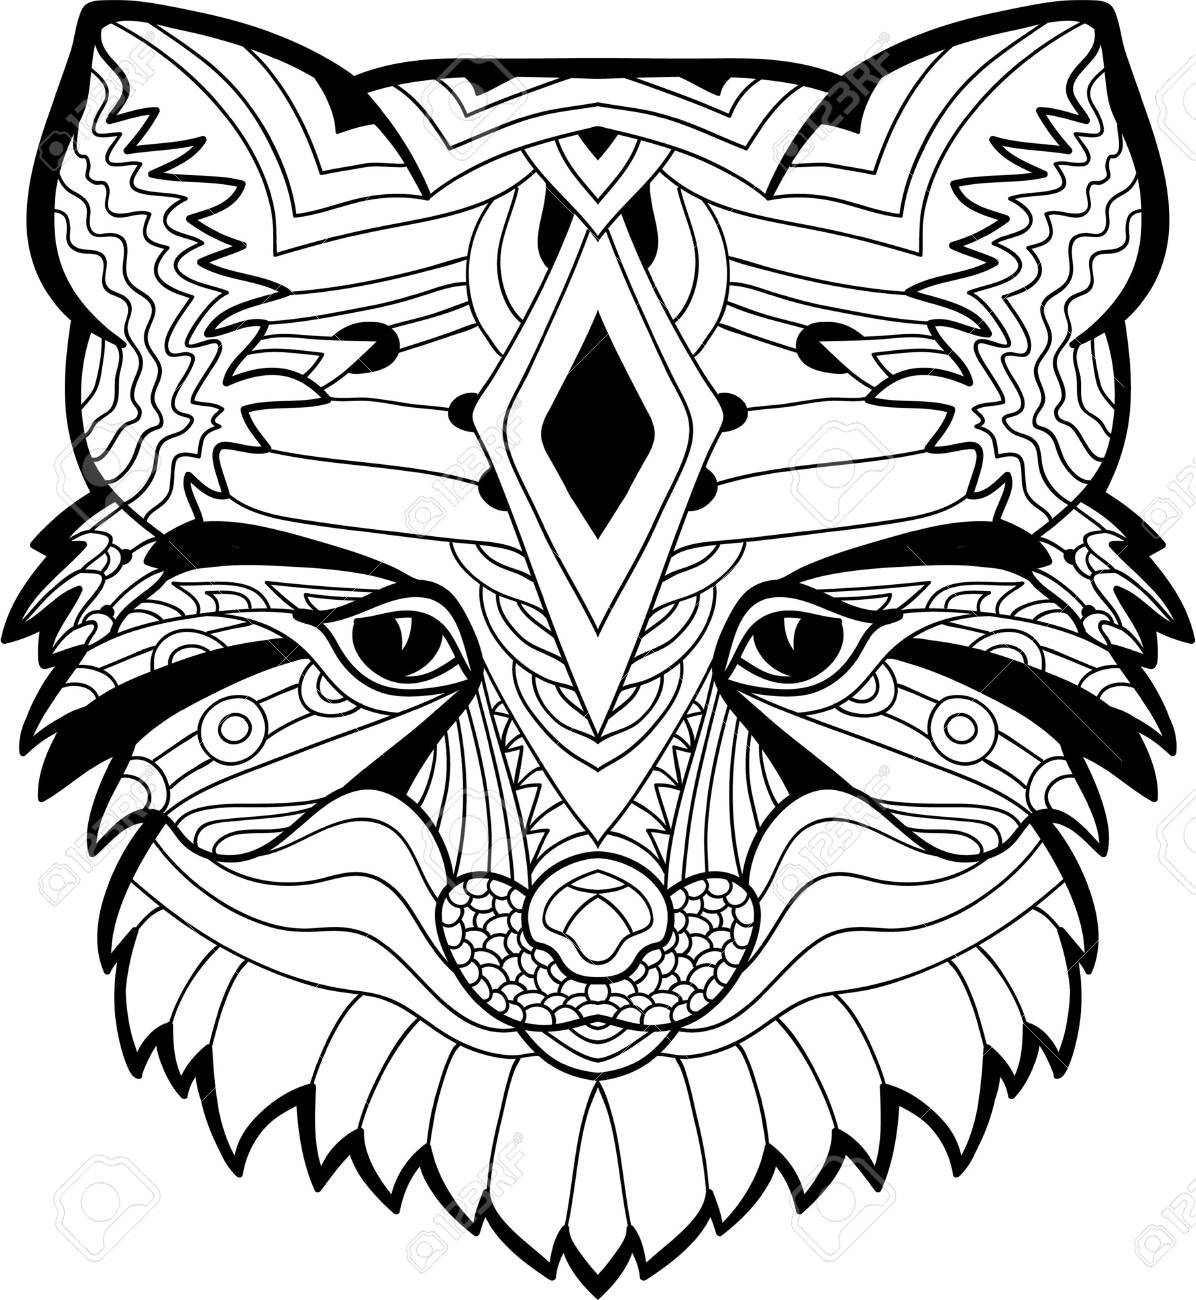 Monochrome Ink Drawing. A Drawing Of A Fox Head With Tribal Patterns ...